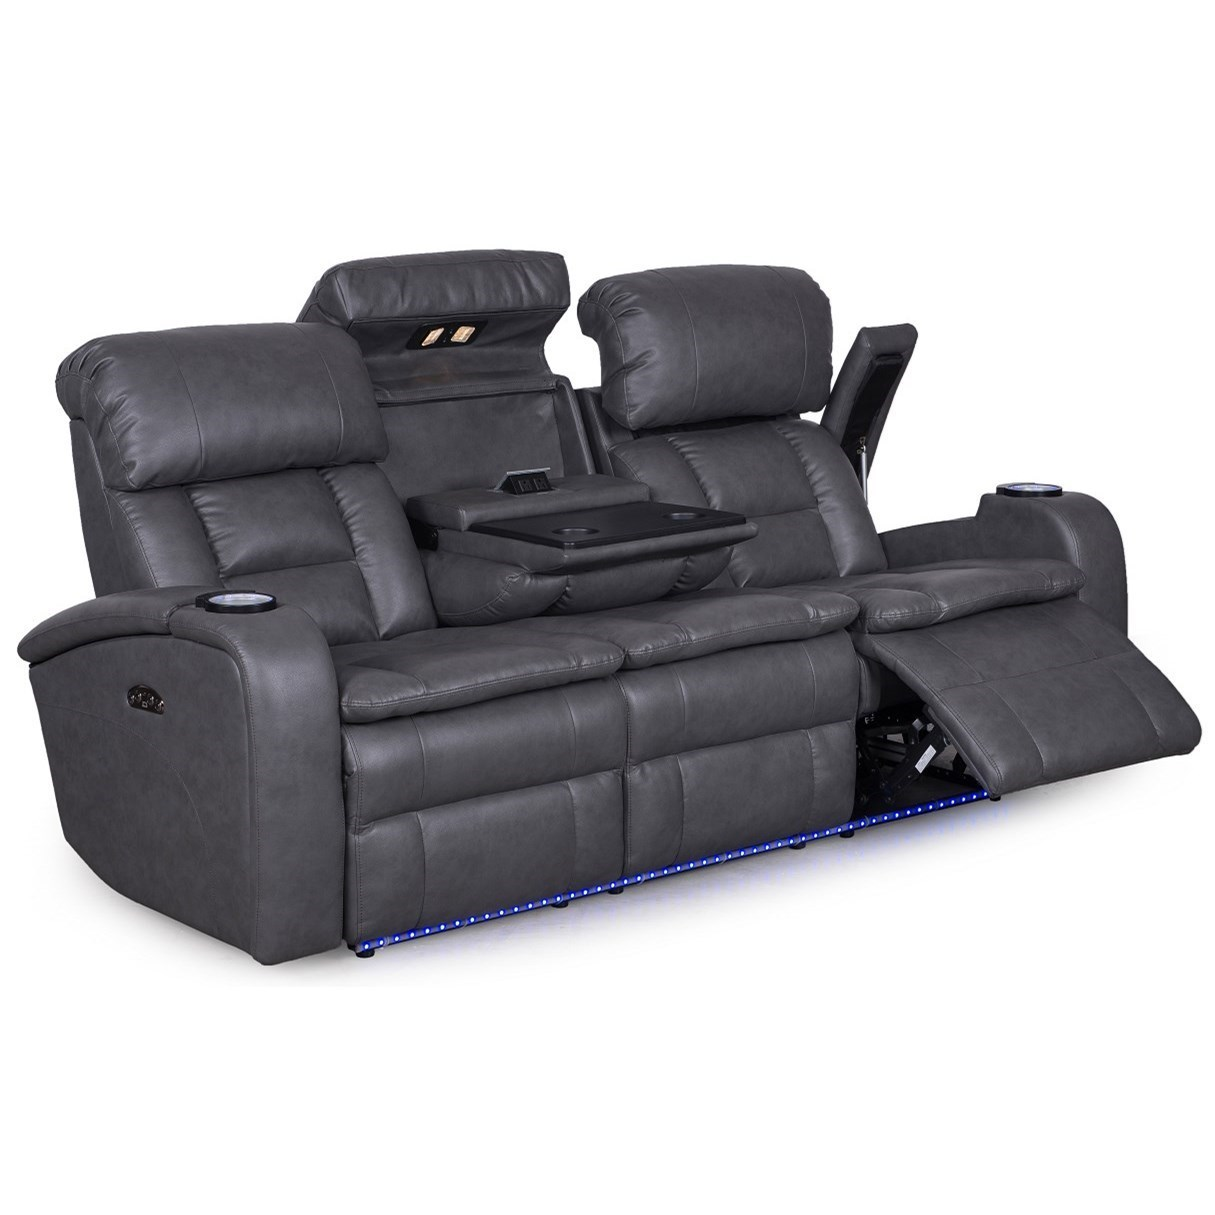 Synergy Home Furnishings 467 Casual Power Reclining Sofa with Drop-Down Table and Theater Lighting  sc 1 st  Rifeu0027s Home Furniture & Synergy Home Furnishings 467 Casual Power Reclining Sofa with Drop ... islam-shia.org